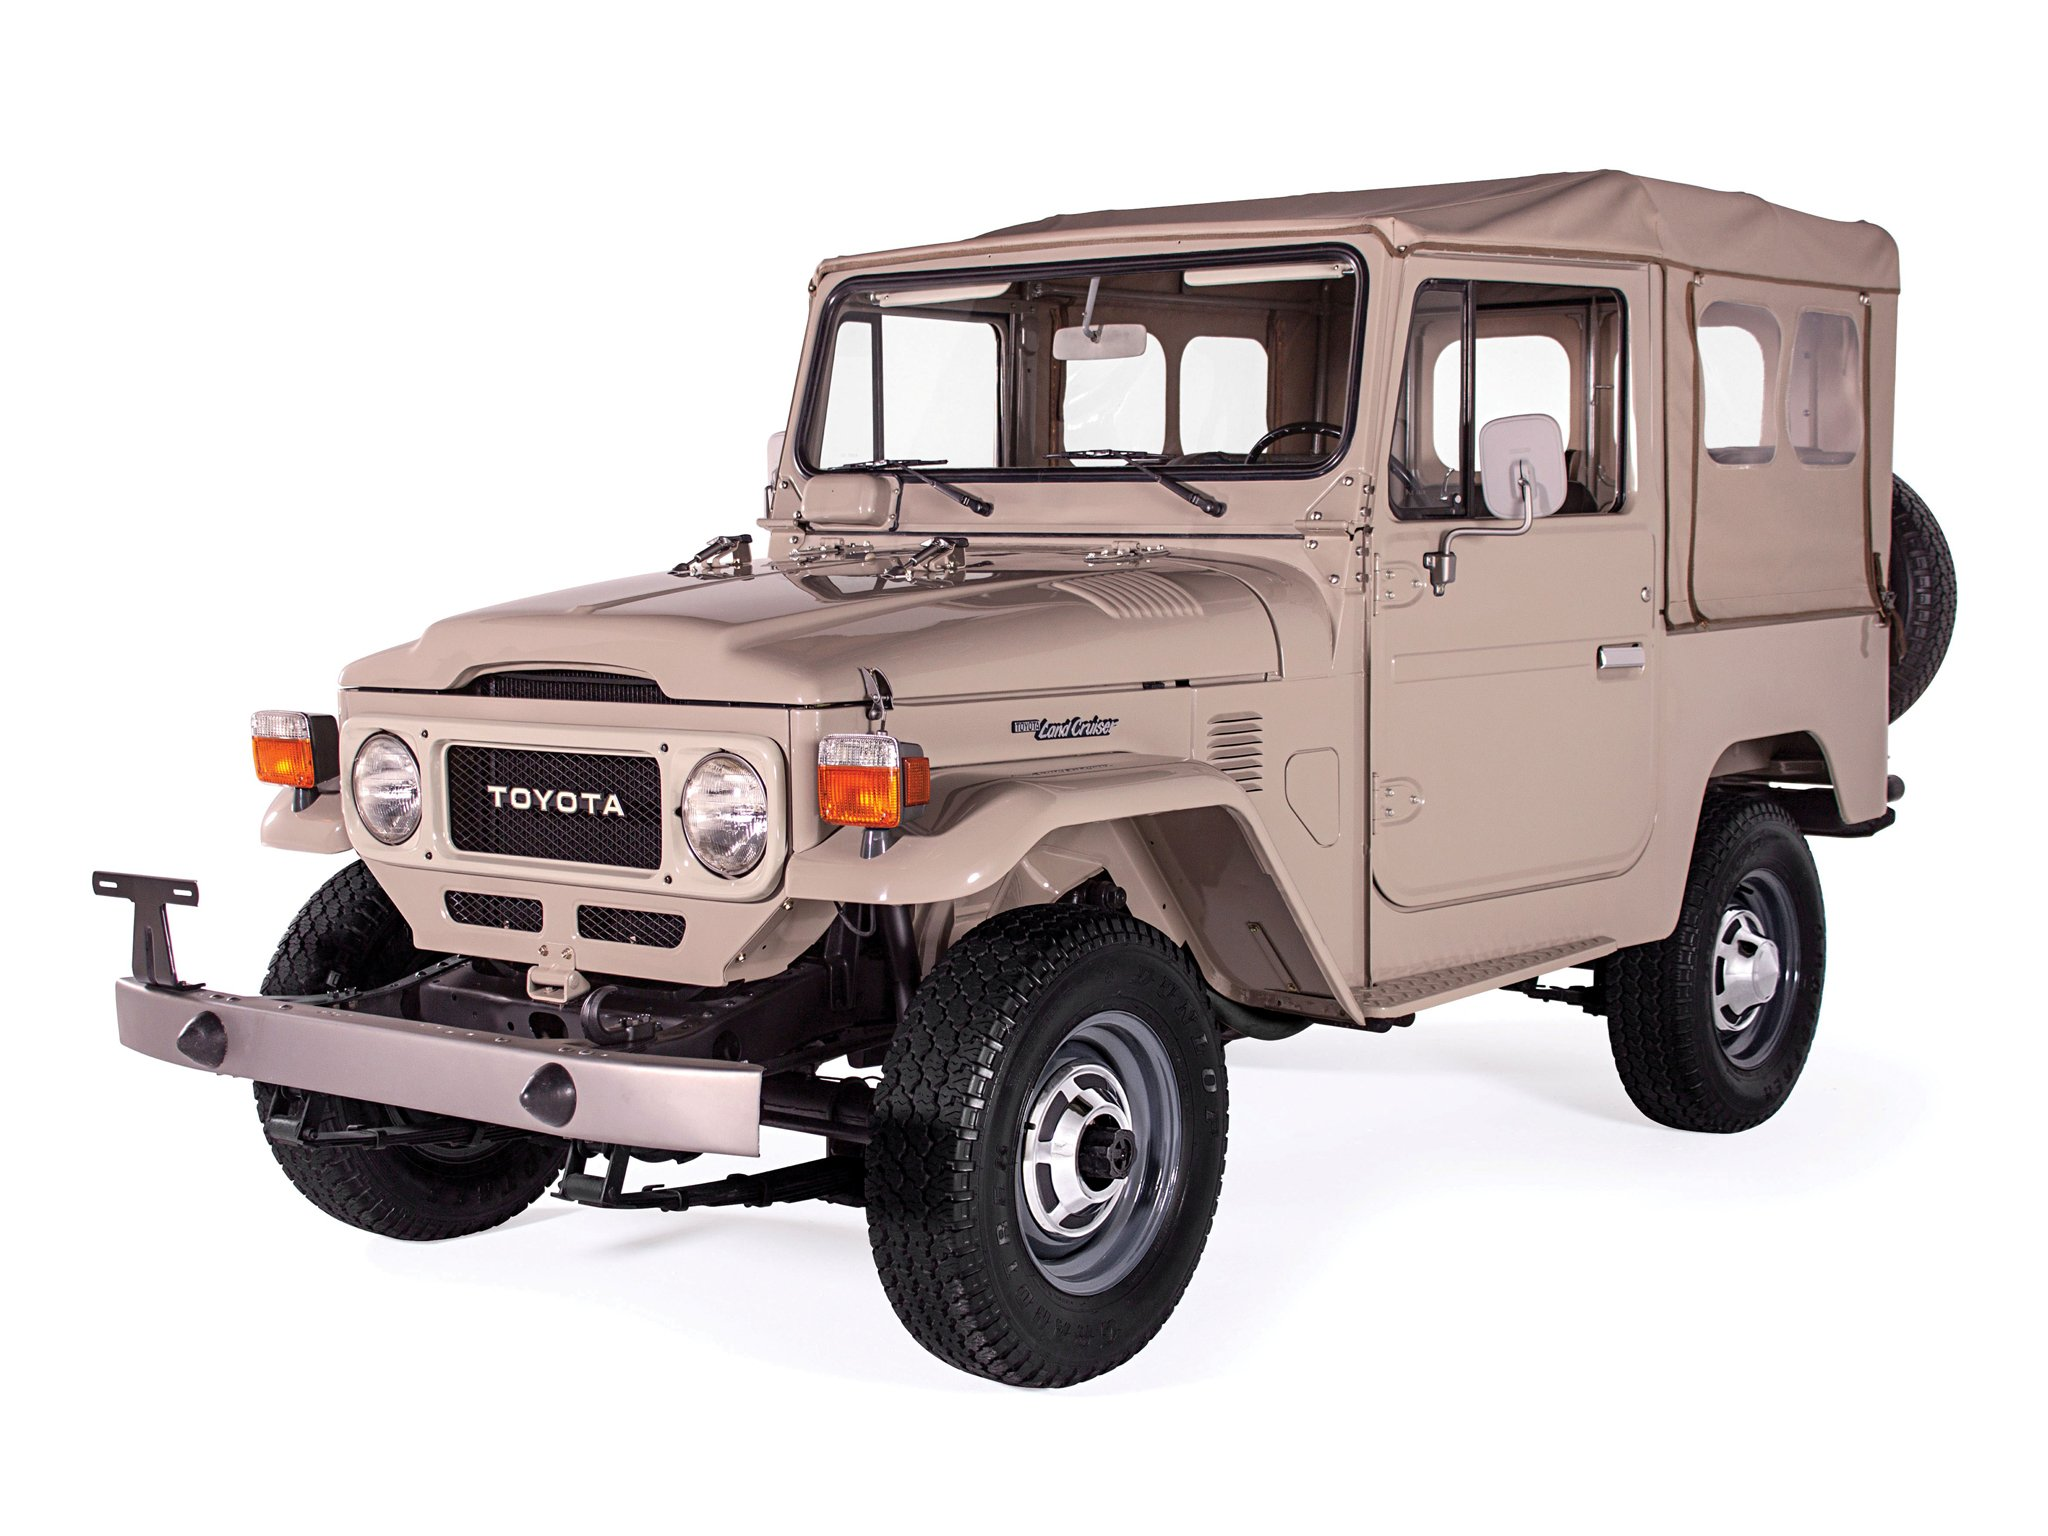 1980 toyota land cruiser canvas top fj40 4x4 suv. Black Bedroom Furniture Sets. Home Design Ideas